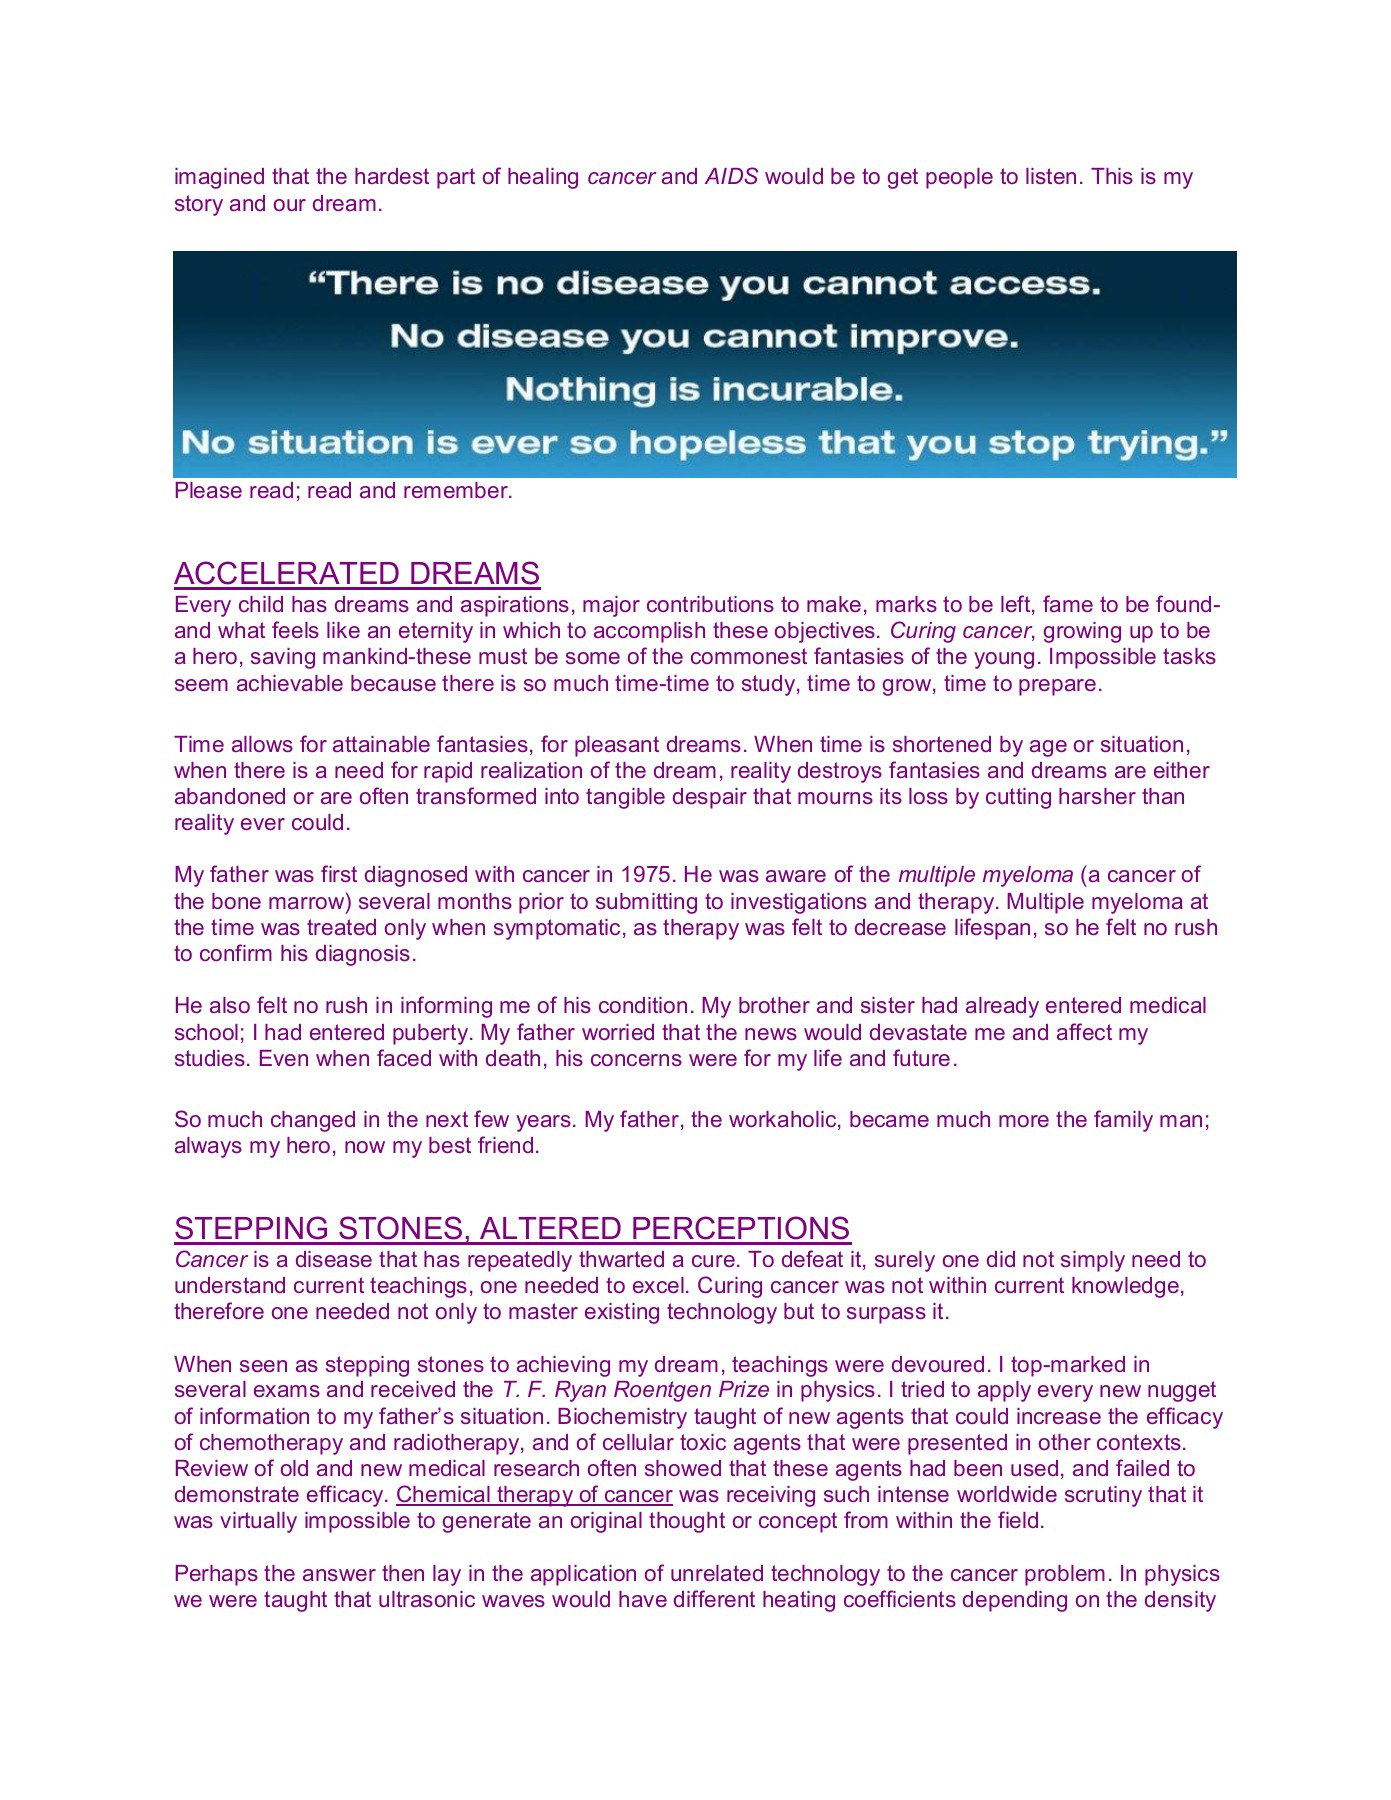 TRUTH, LIES AND CONSPIRACIES - Imune Pages 1 - 21 - Text Version